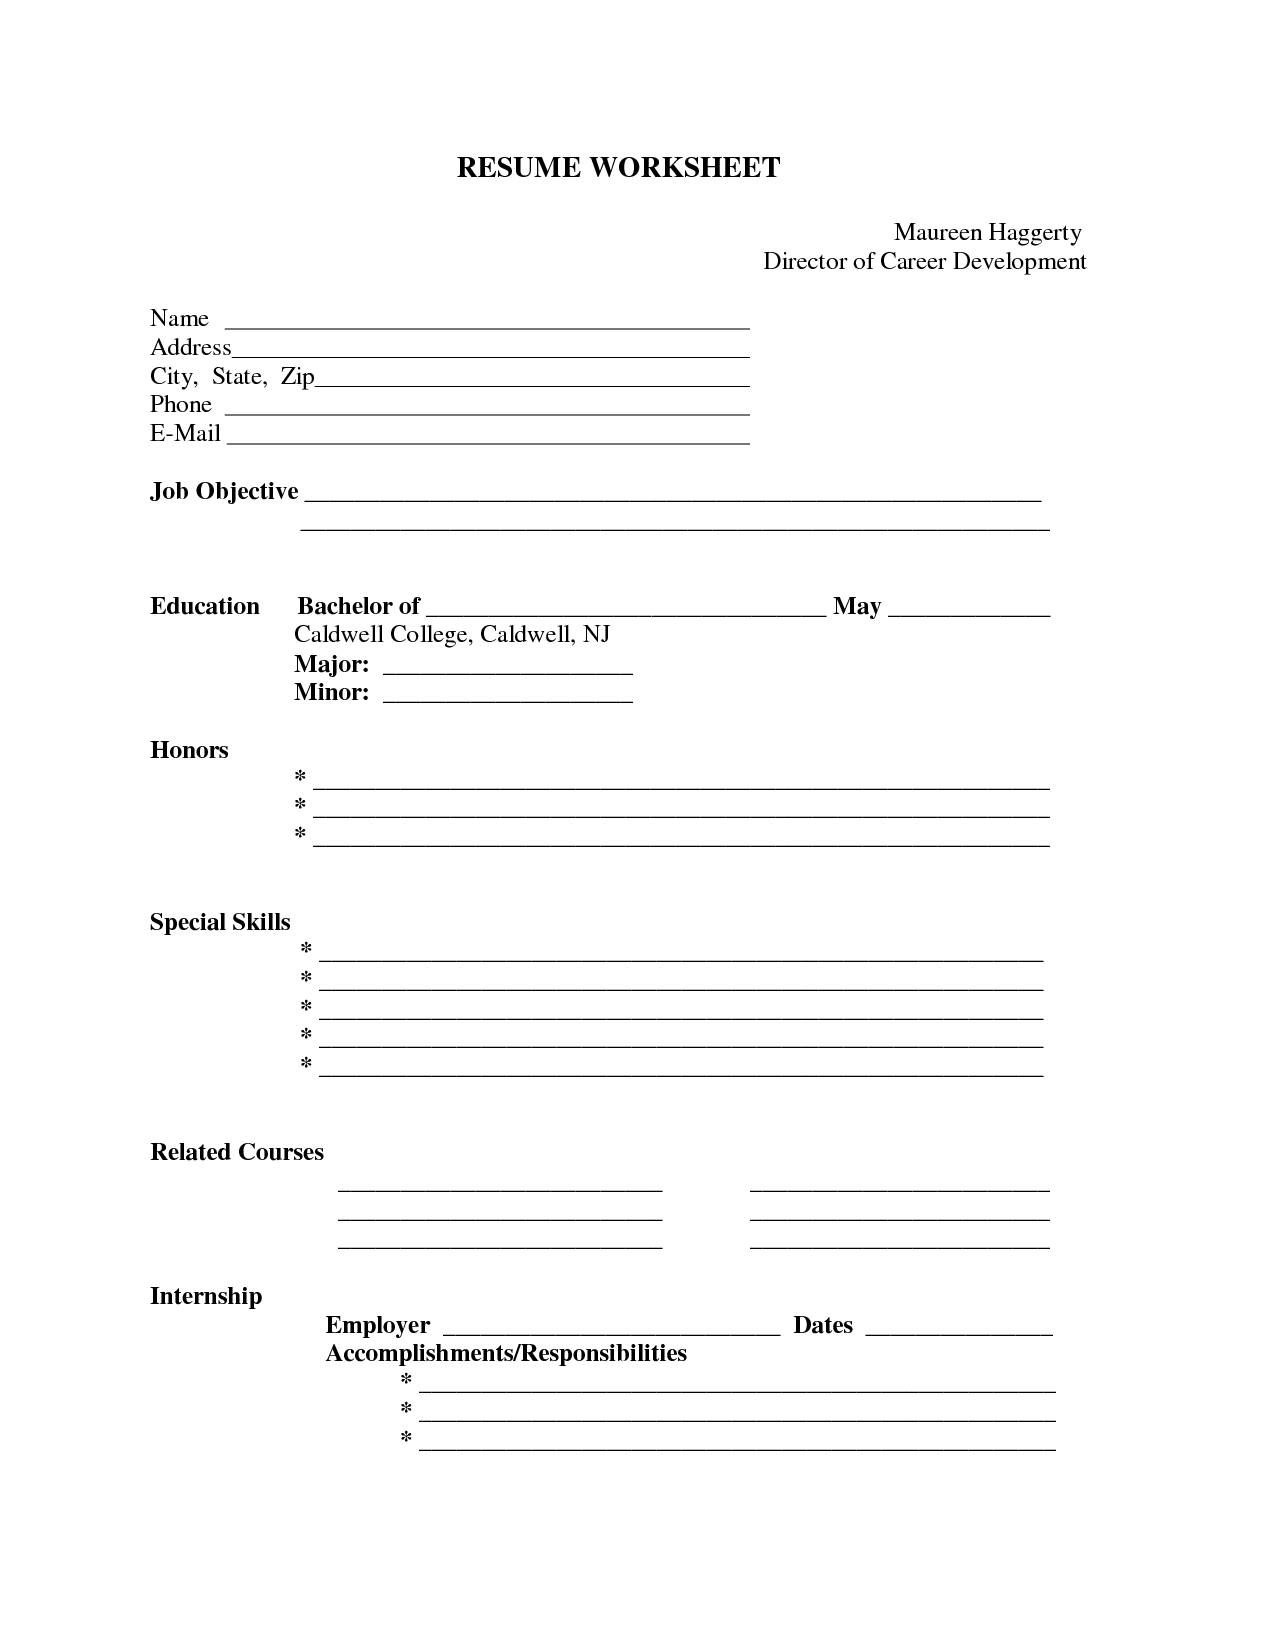 Pinresumejob On Resume Job | Free Printable Resume Templates - Free Printable Resume